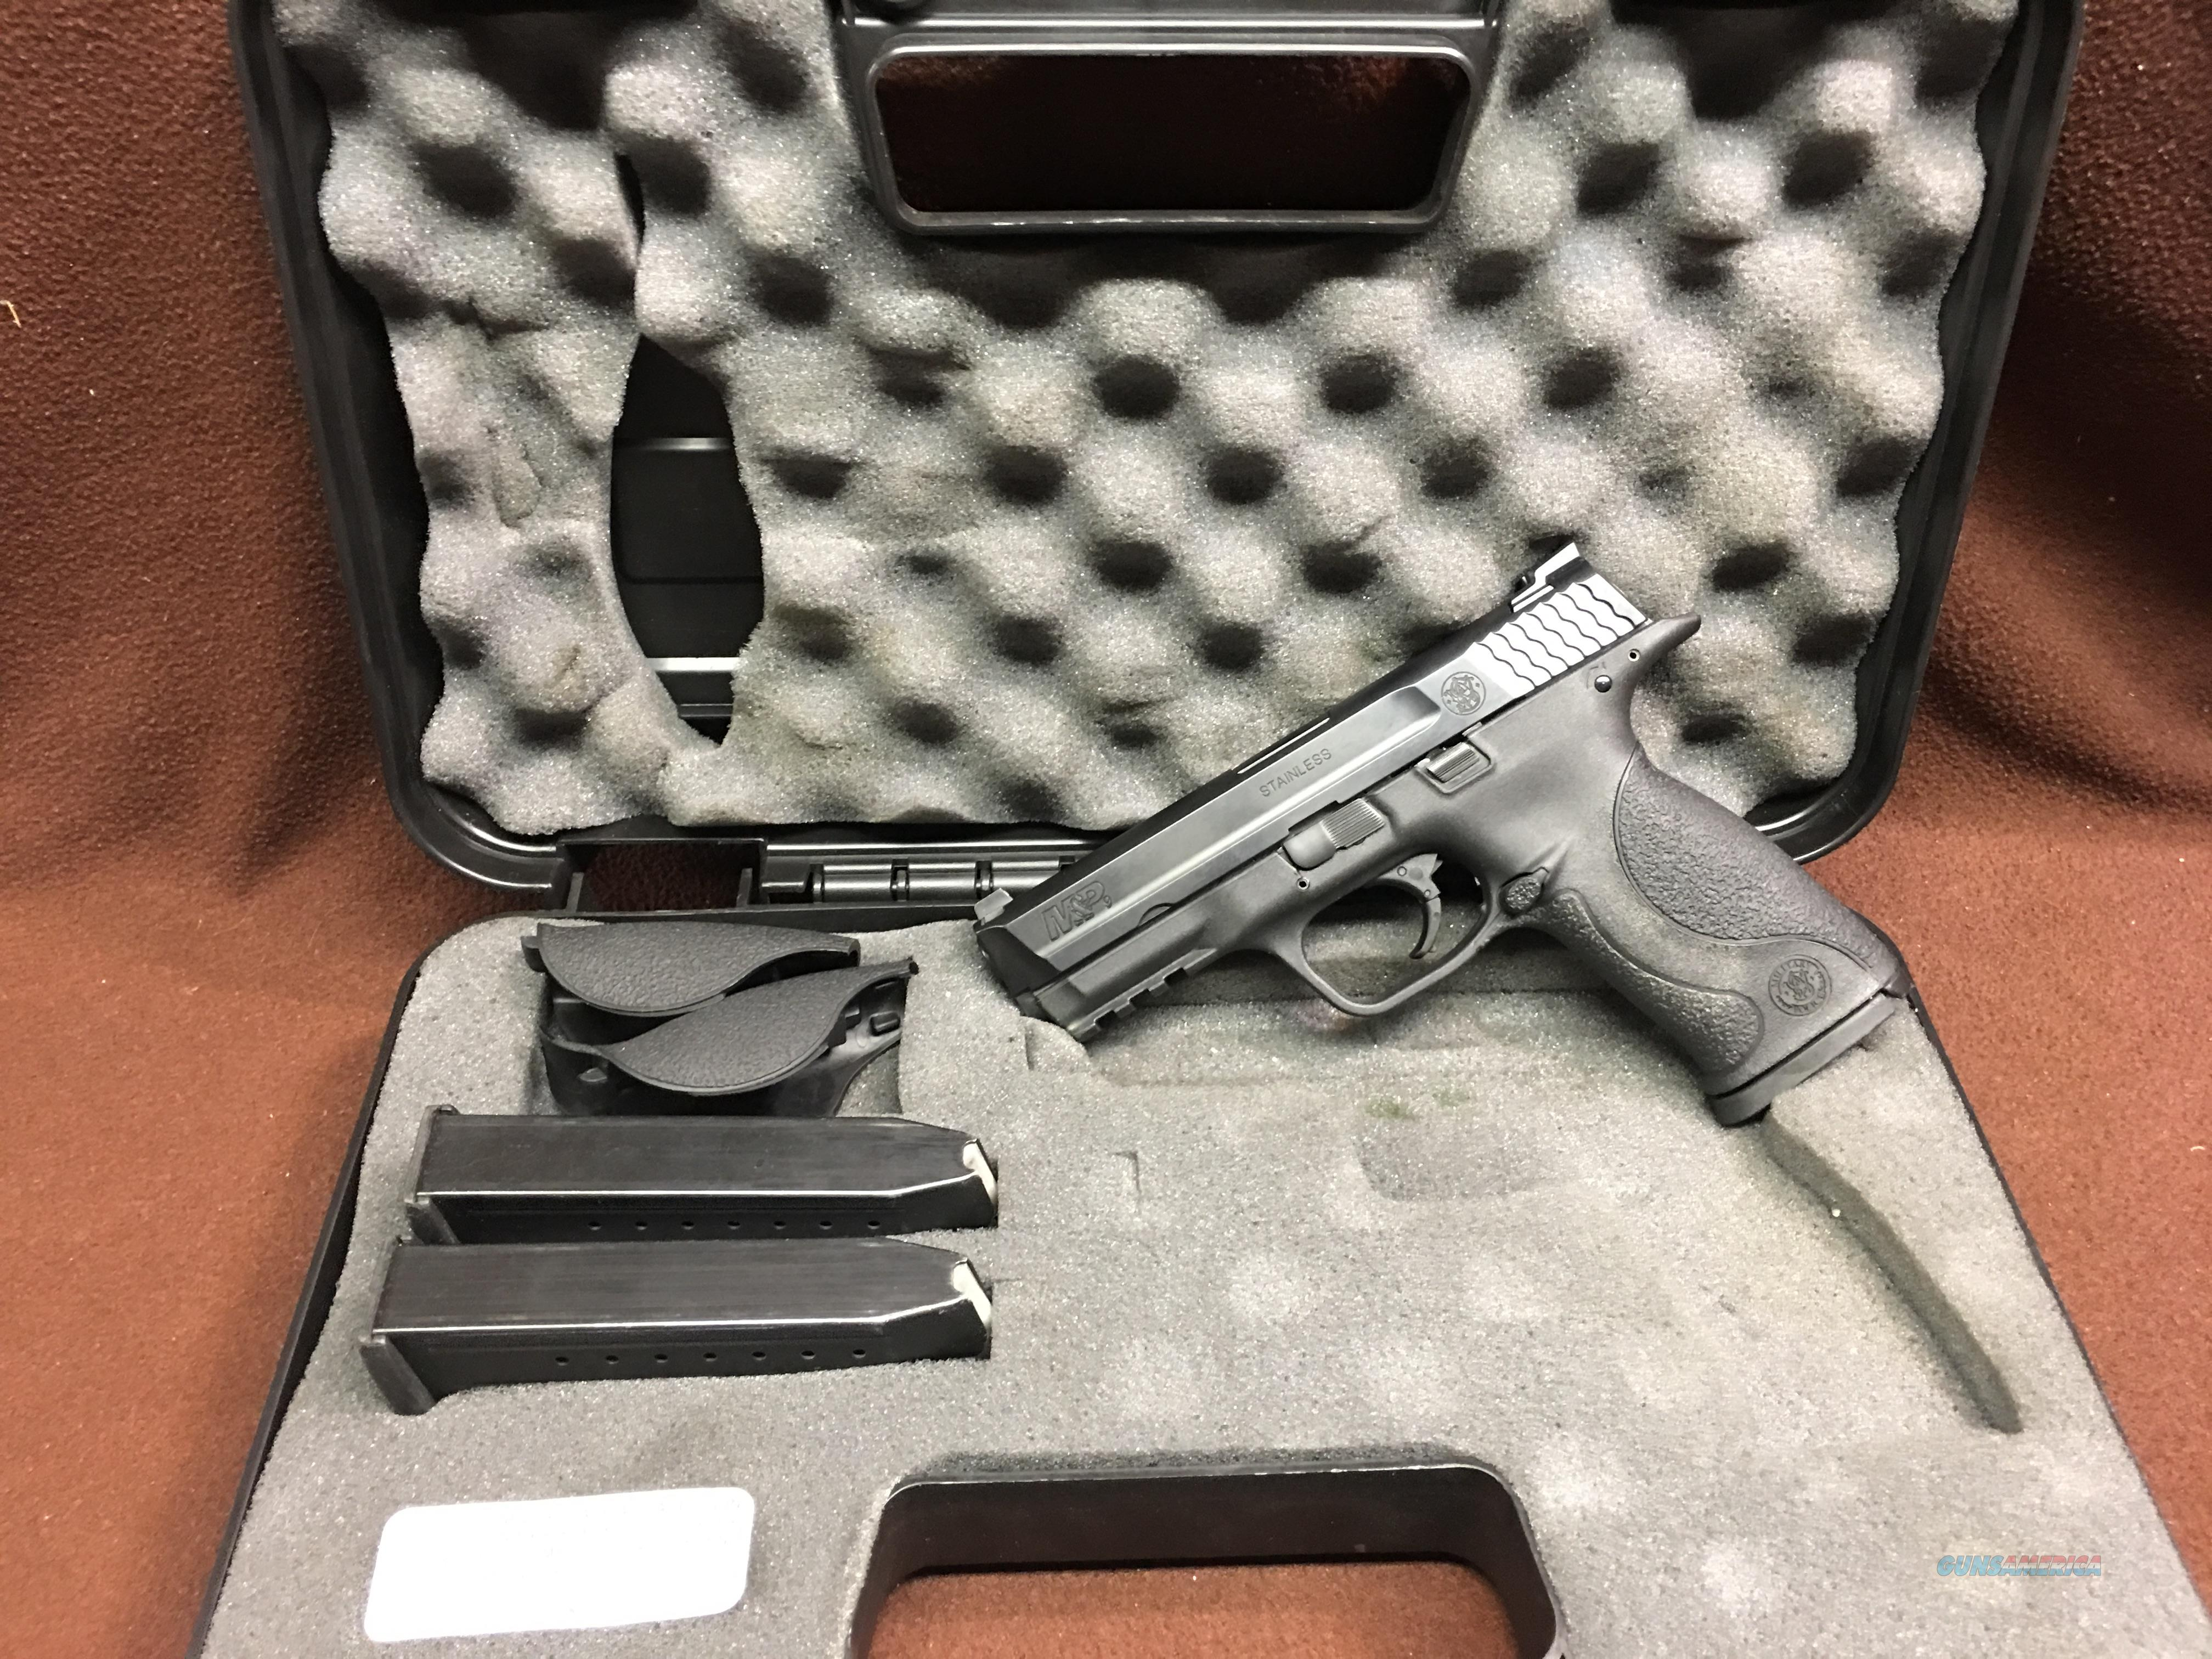 SMITH & WESSON   M&P   9 MM   WITH   TRIJICON  H3   NITE SITES  Guns > Pistols > Smith & Wesson Pistols - Autos > Polymer Frame